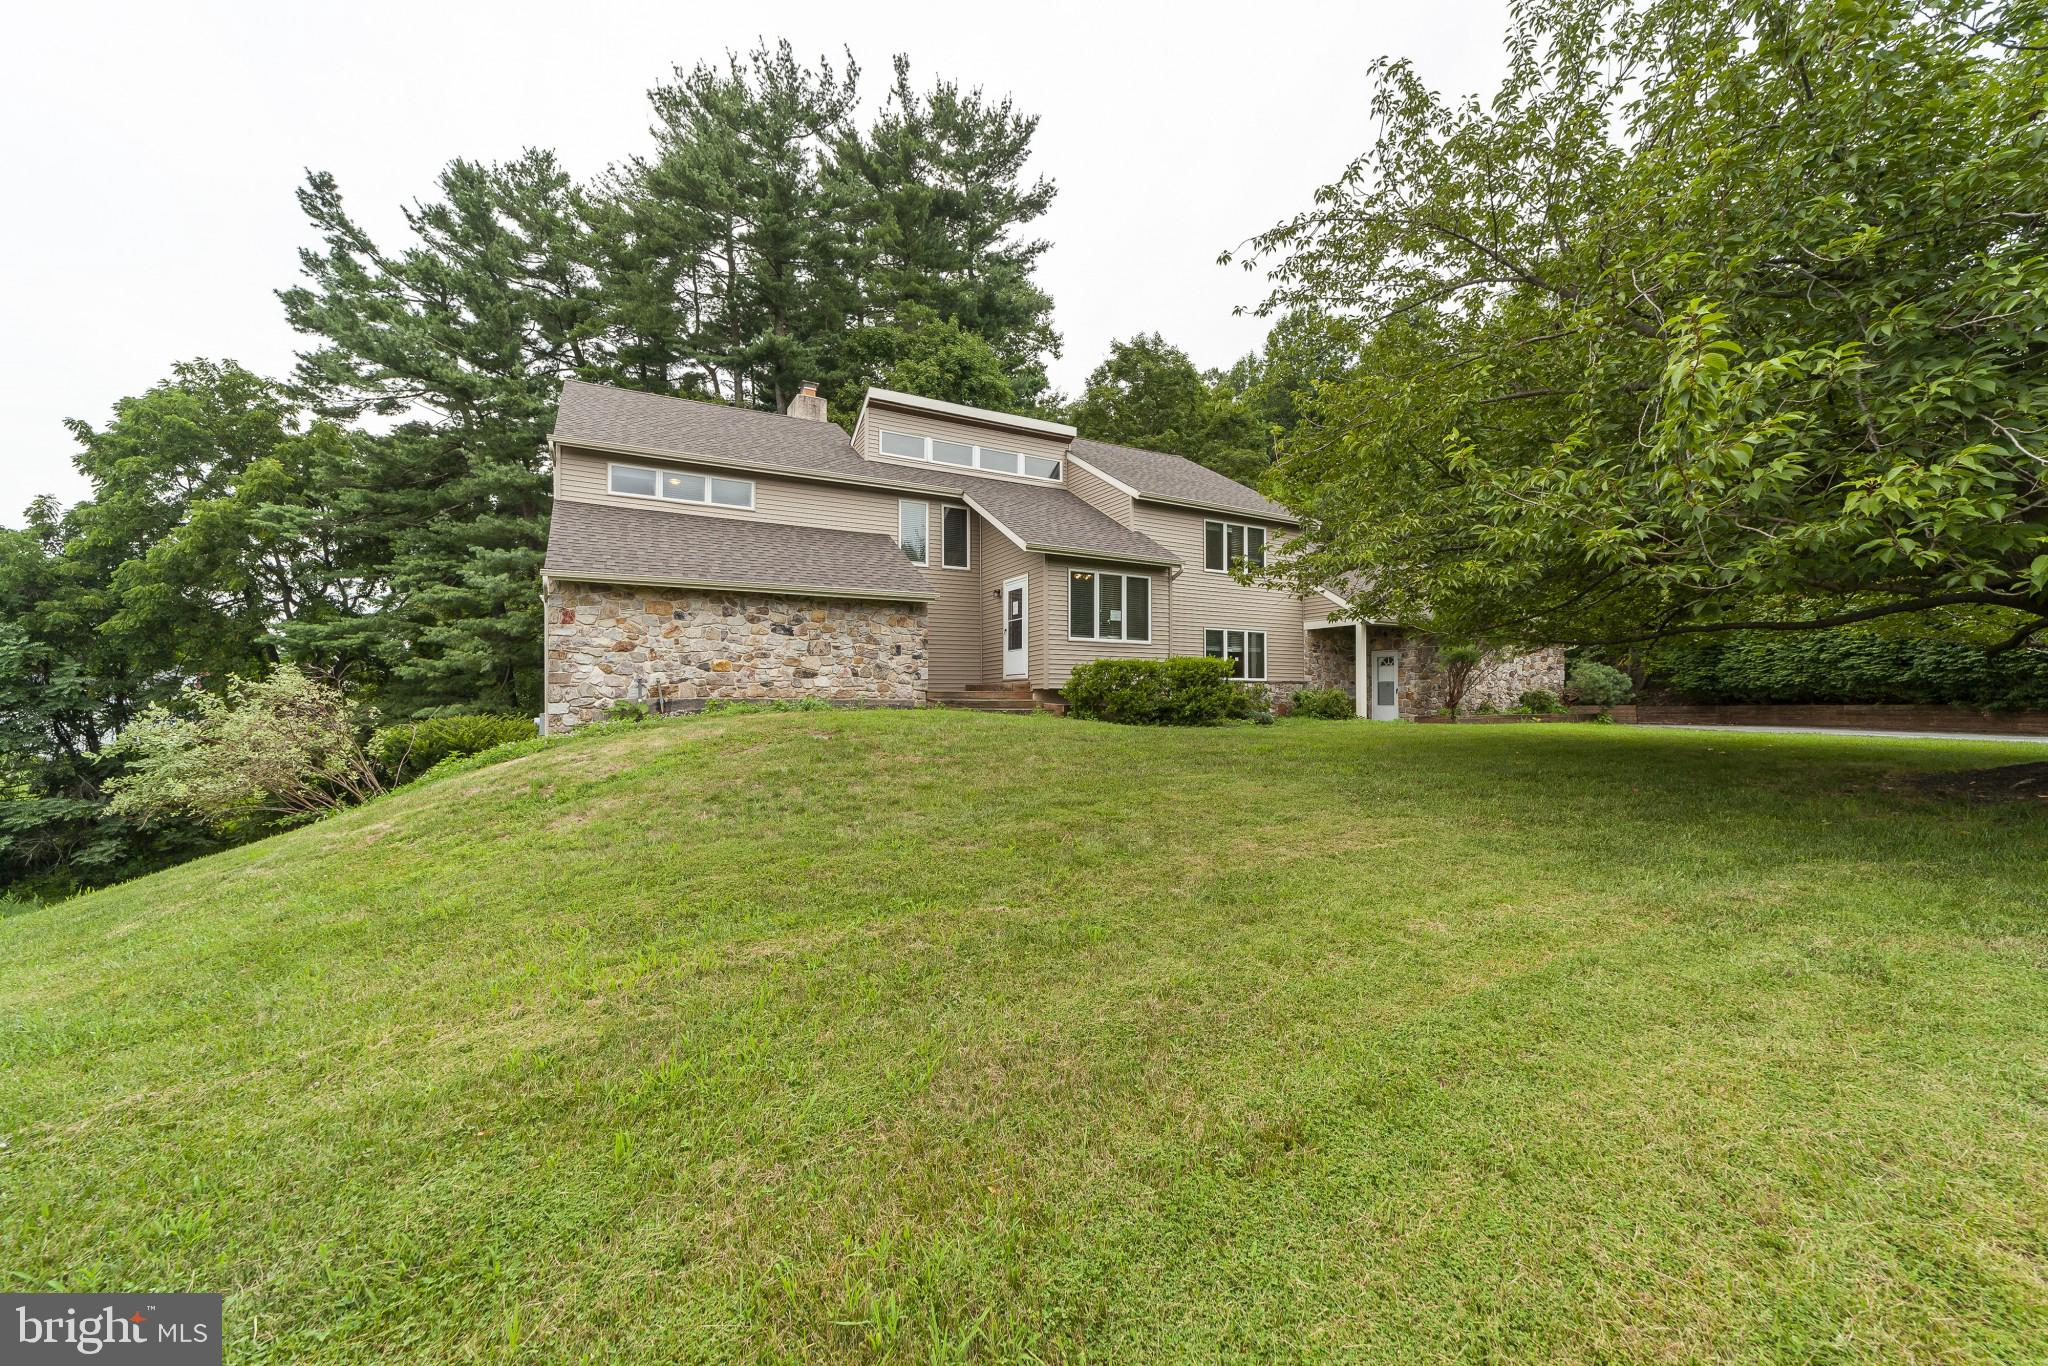 525 Legion Dr, West Chester, PA, 19380